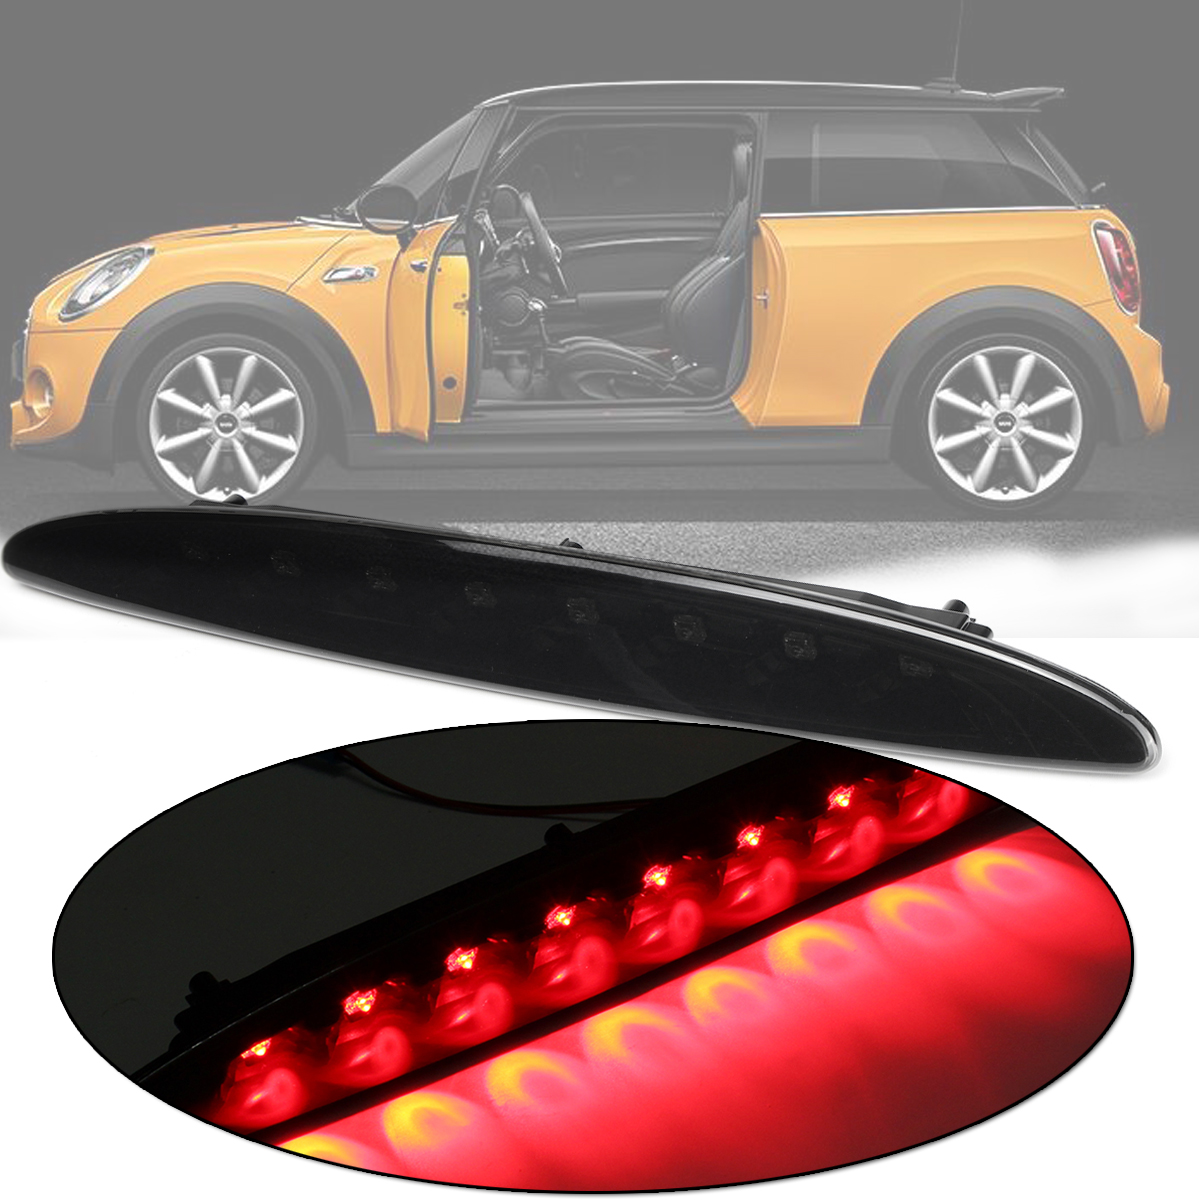 1Pc Car Third Brake Light for BMW MINI COOPER ONE R50 R53 2001-2006 Car led Super Bright Rear Brake Light Stop Red Color Light